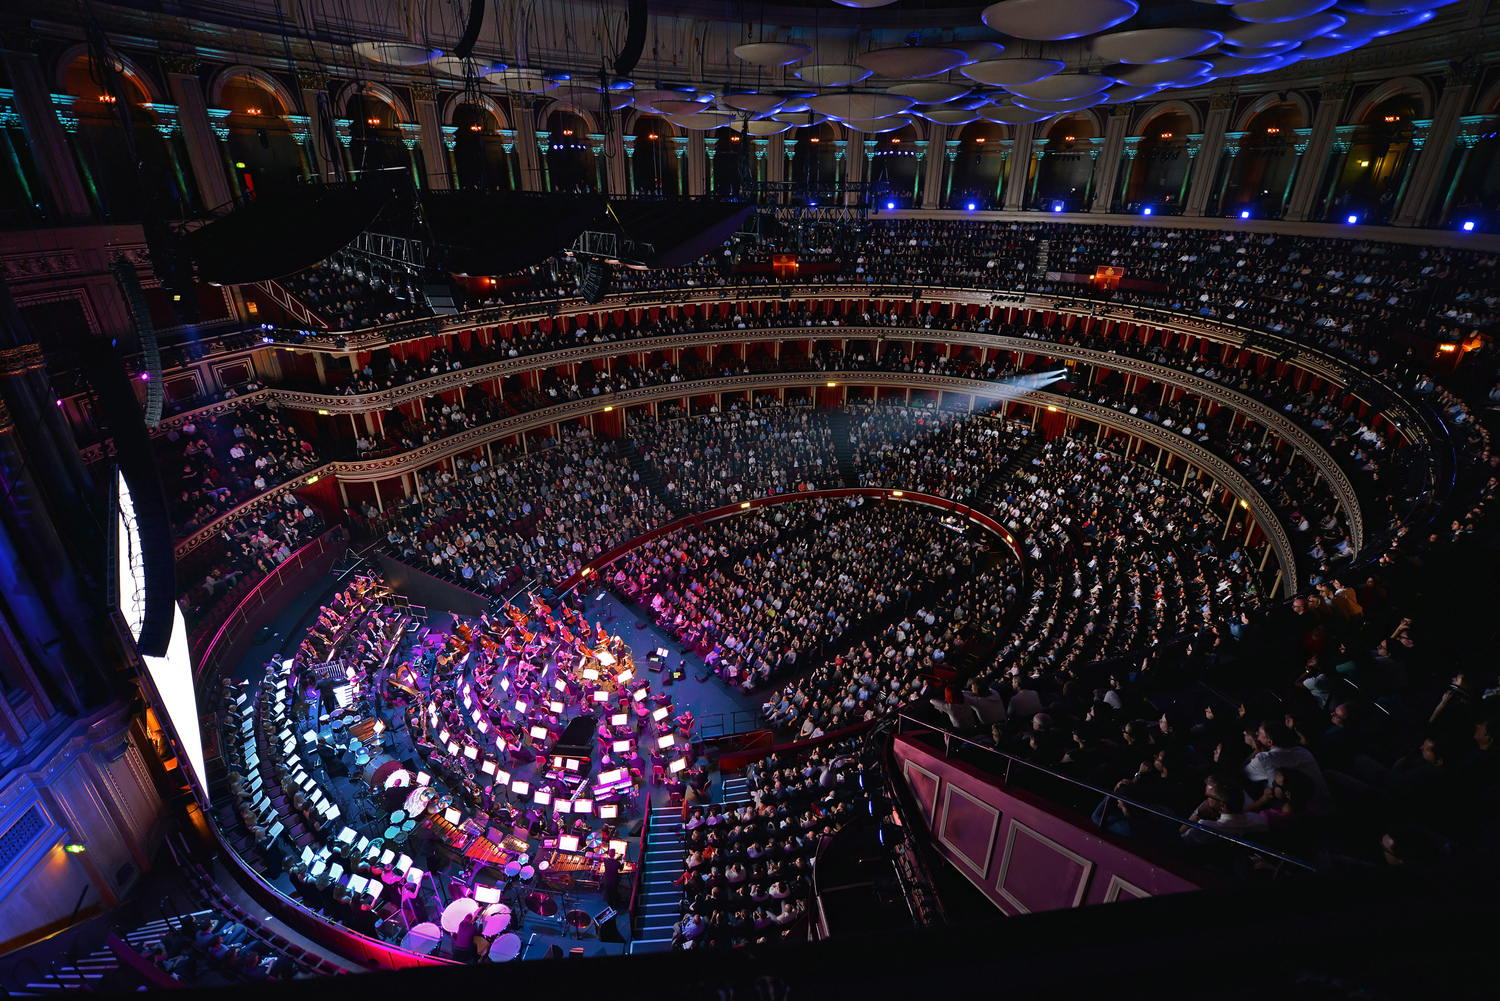 Royal Albert Hall Films in Concert programme